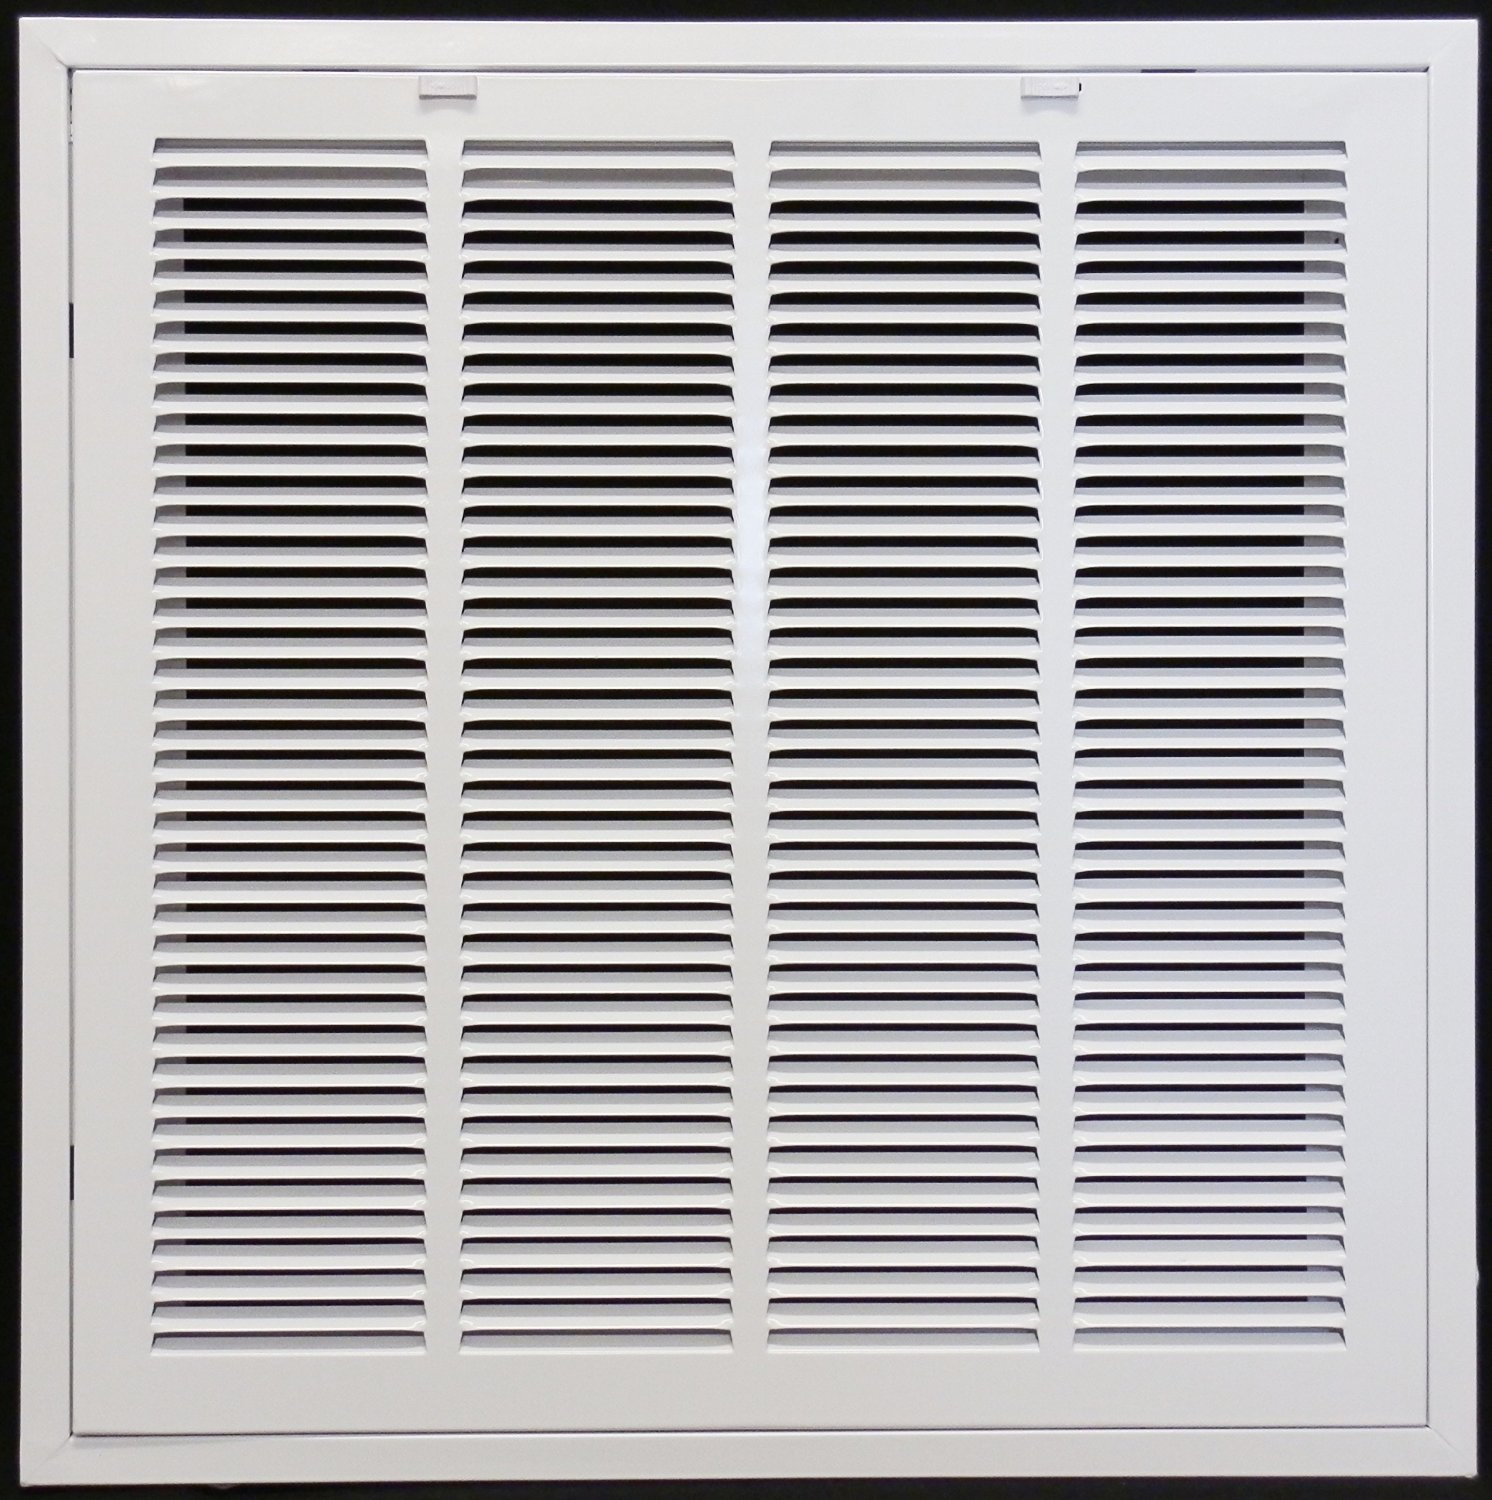 24'' X 24 Steel Return Air Filter Grille for 1'' Filter - Removable Face/Door - HVAC DUCT COVER - Flat Stamped Face - White [Outer Dimensions: 26.5''w X 26.5''h]